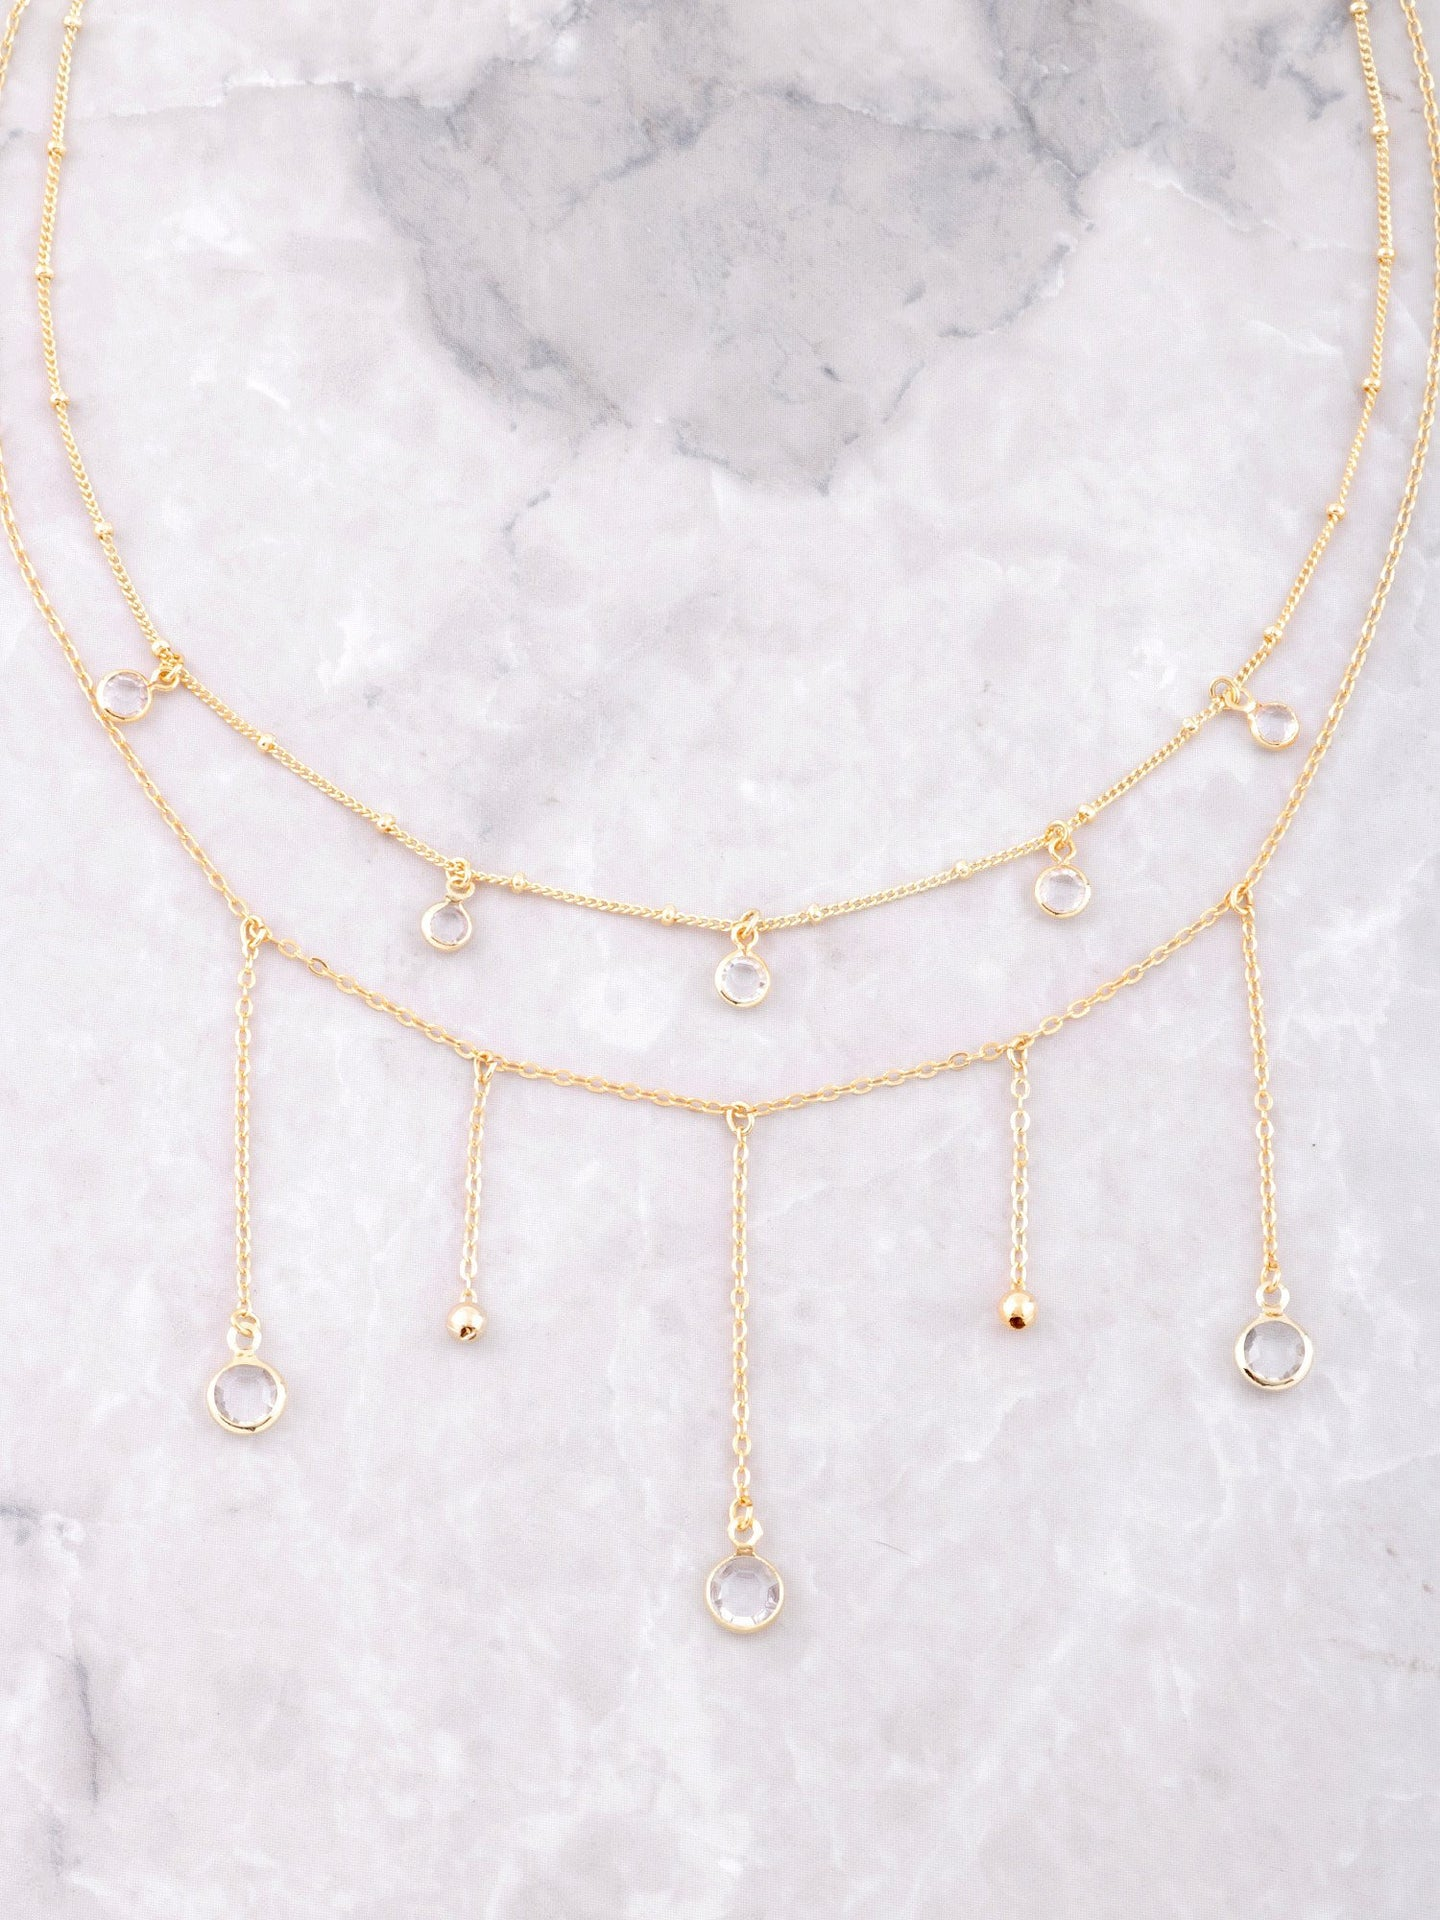 Dripping Stones Choker Set Anarchy Street Gold